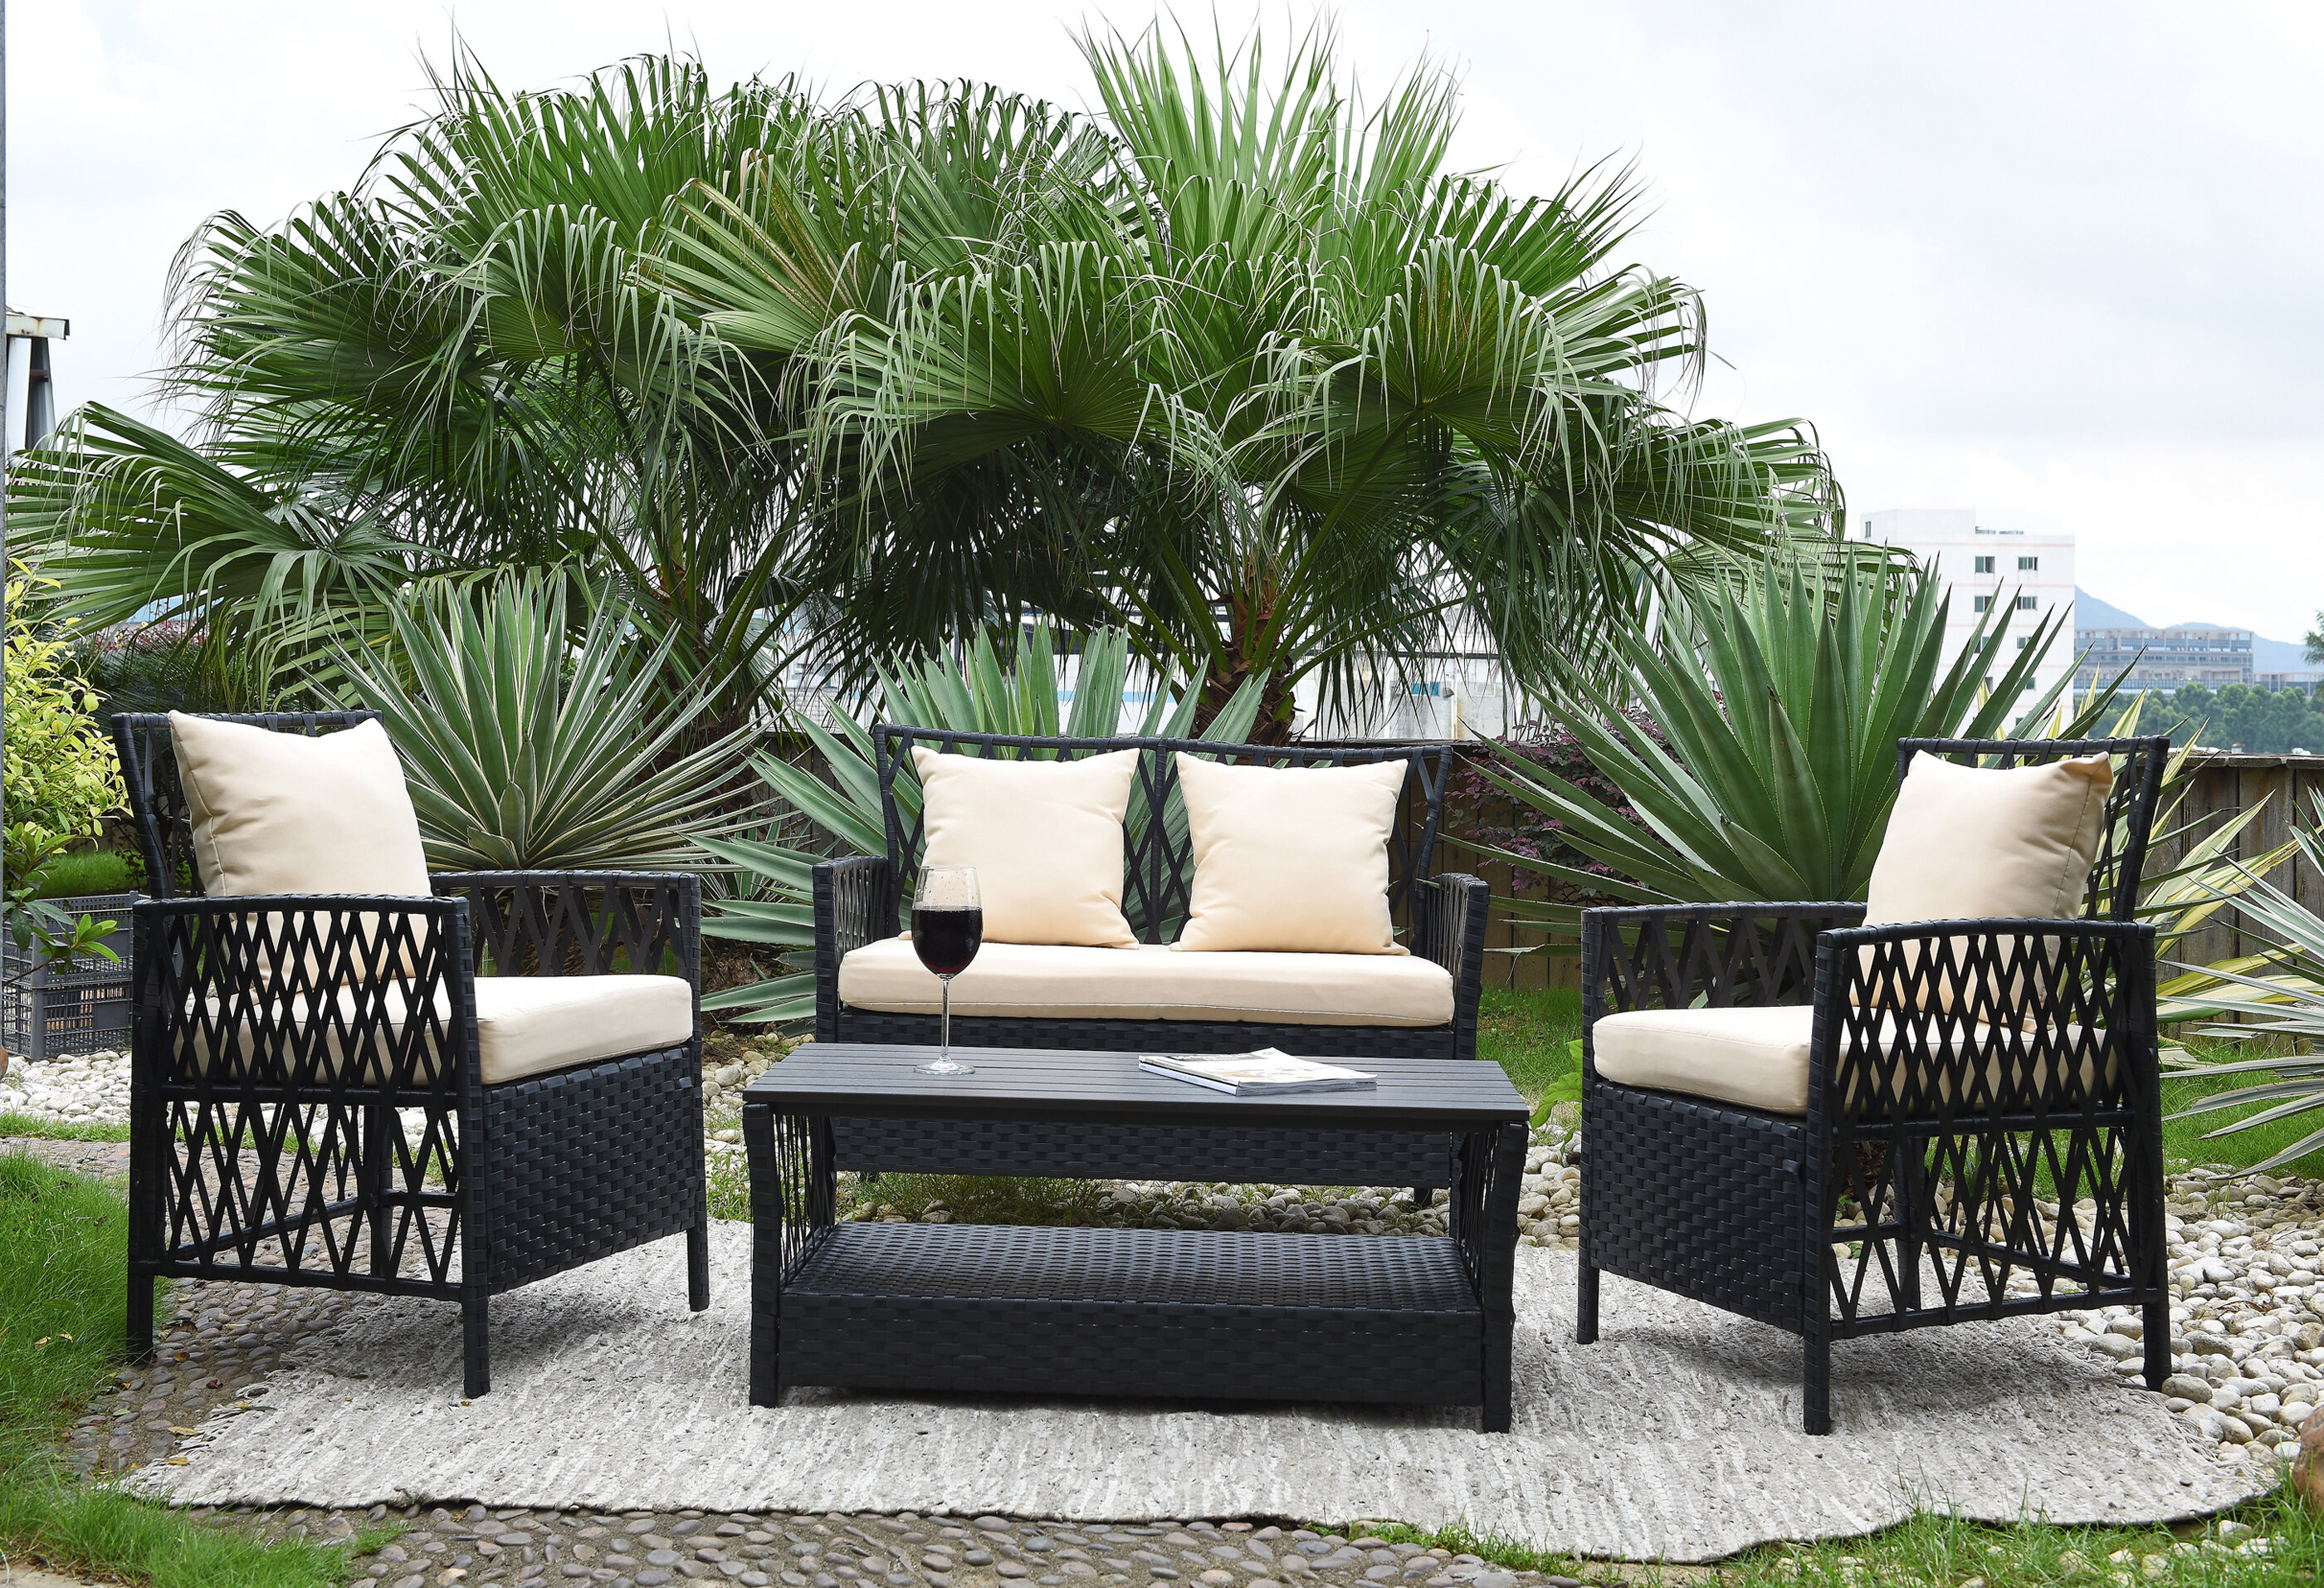 Ackerson 4 Piece Sofa Set with Cushions